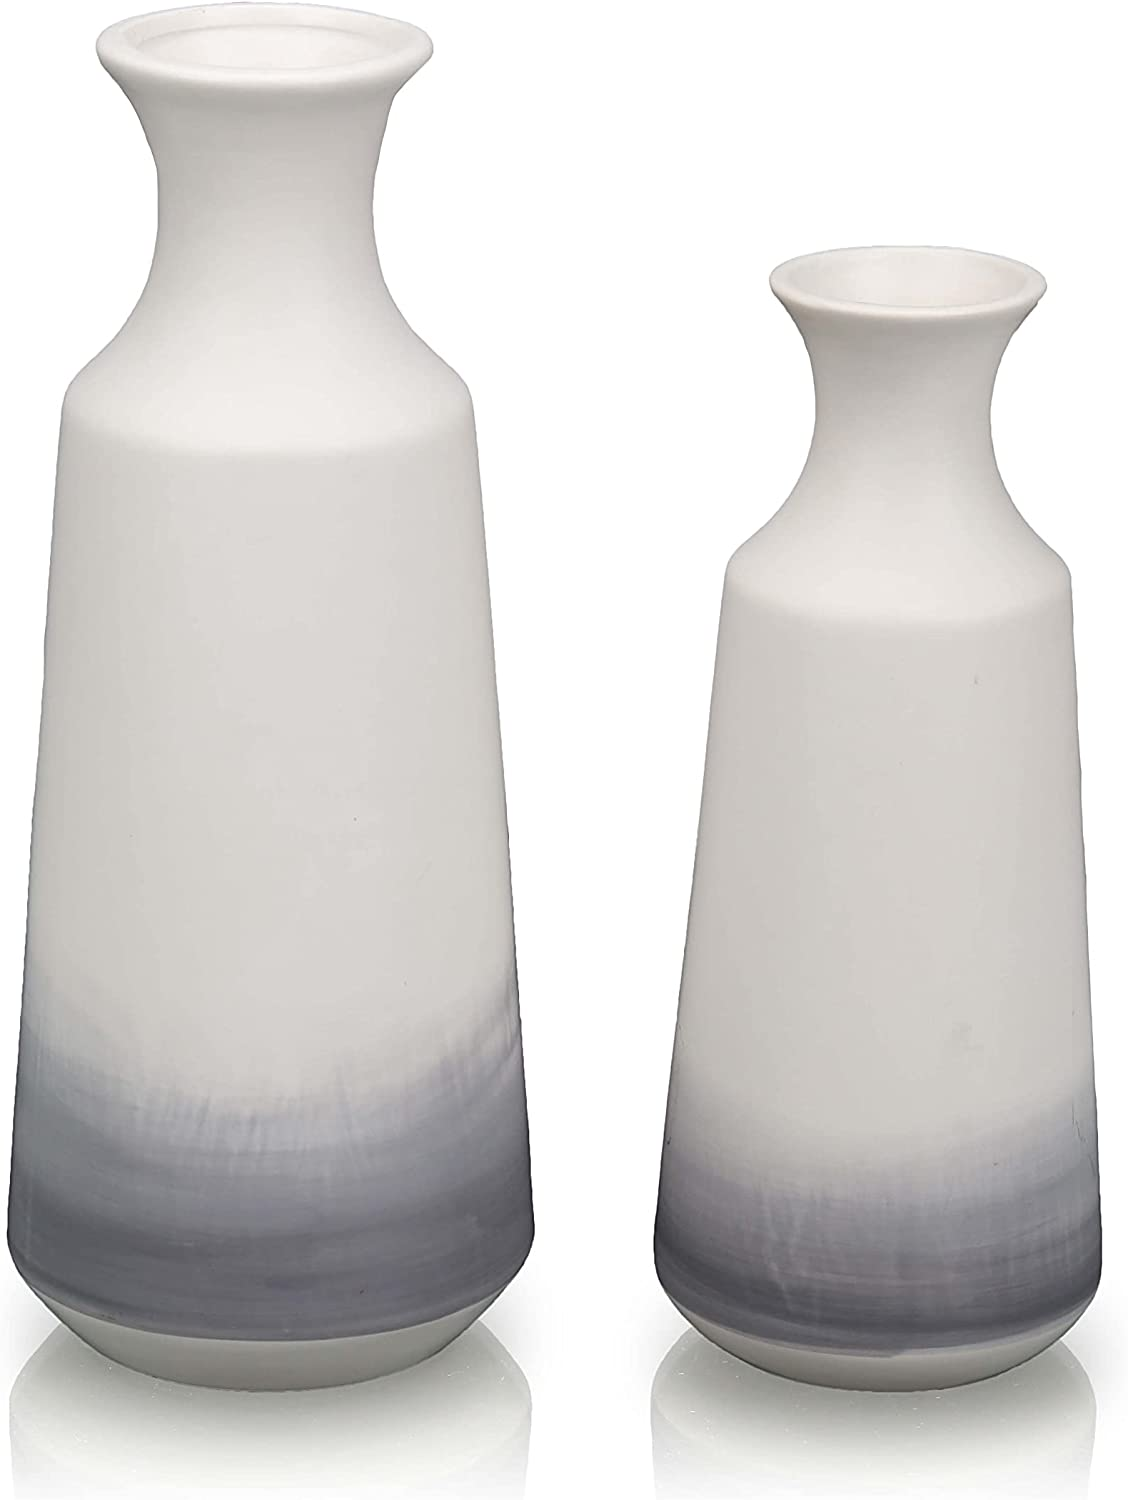 """TERESA'S COLLECTIONS Modern White and Grey Ceramic Vase for Home Decor, Set of 2 Elegant Decorative Vases for Mantel, Fireplace, Living Room Decoration, 12"""" &9.8"""" Tall"""